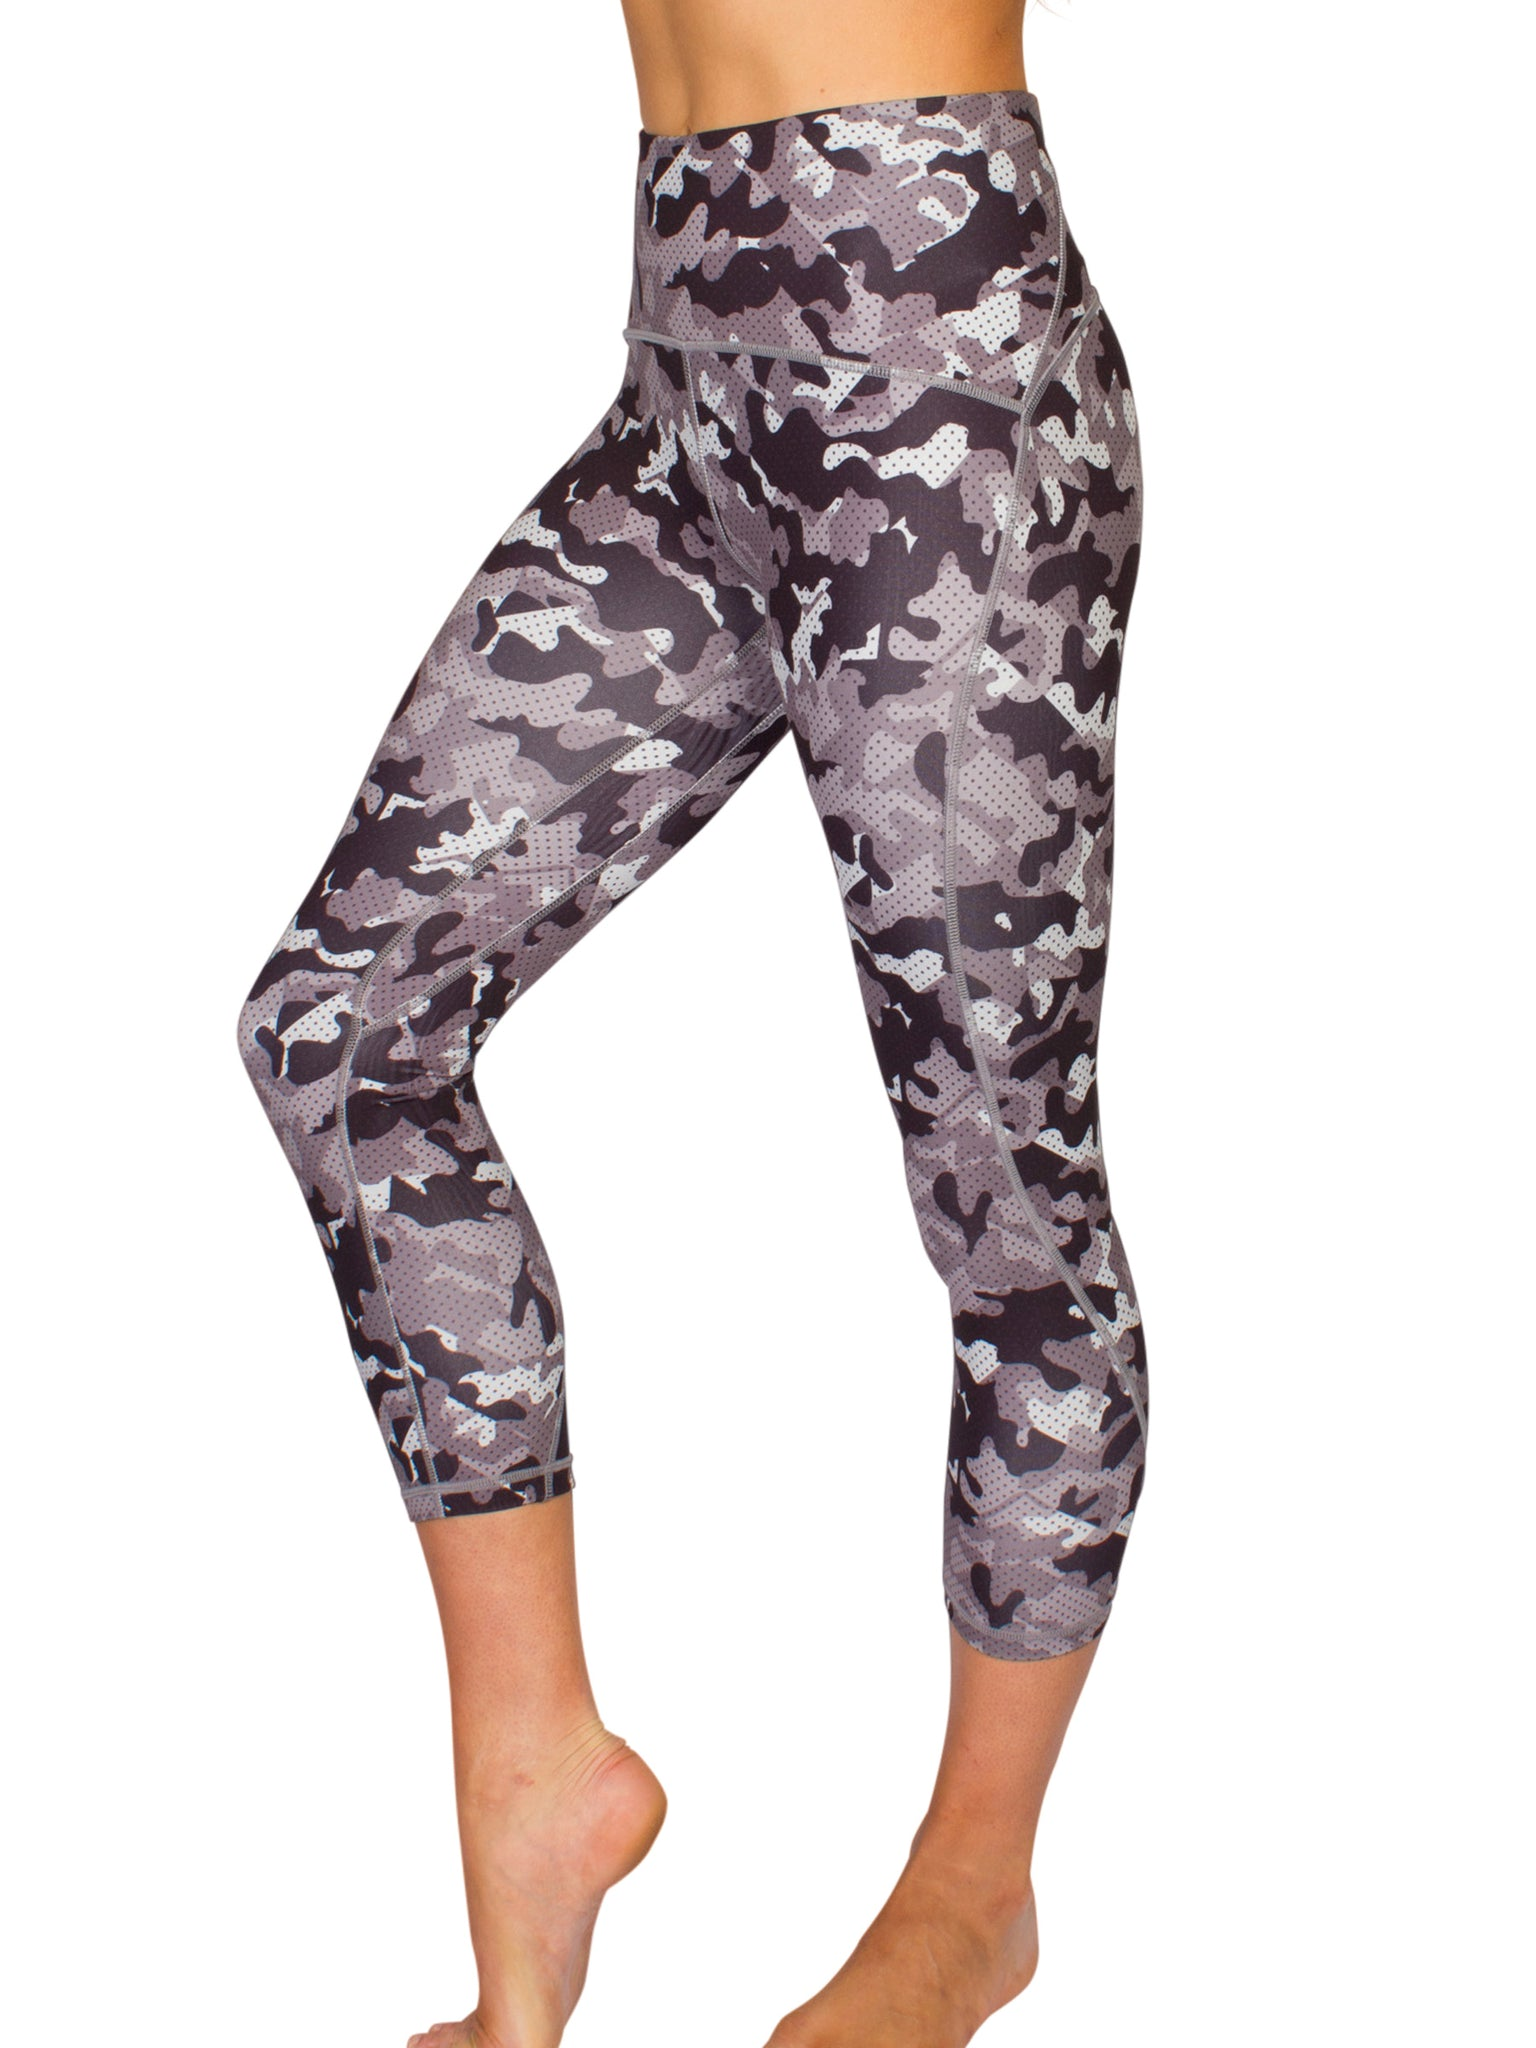 HIGH-RISE CAMO 3/4 TRAINING TIGHTS - GREY